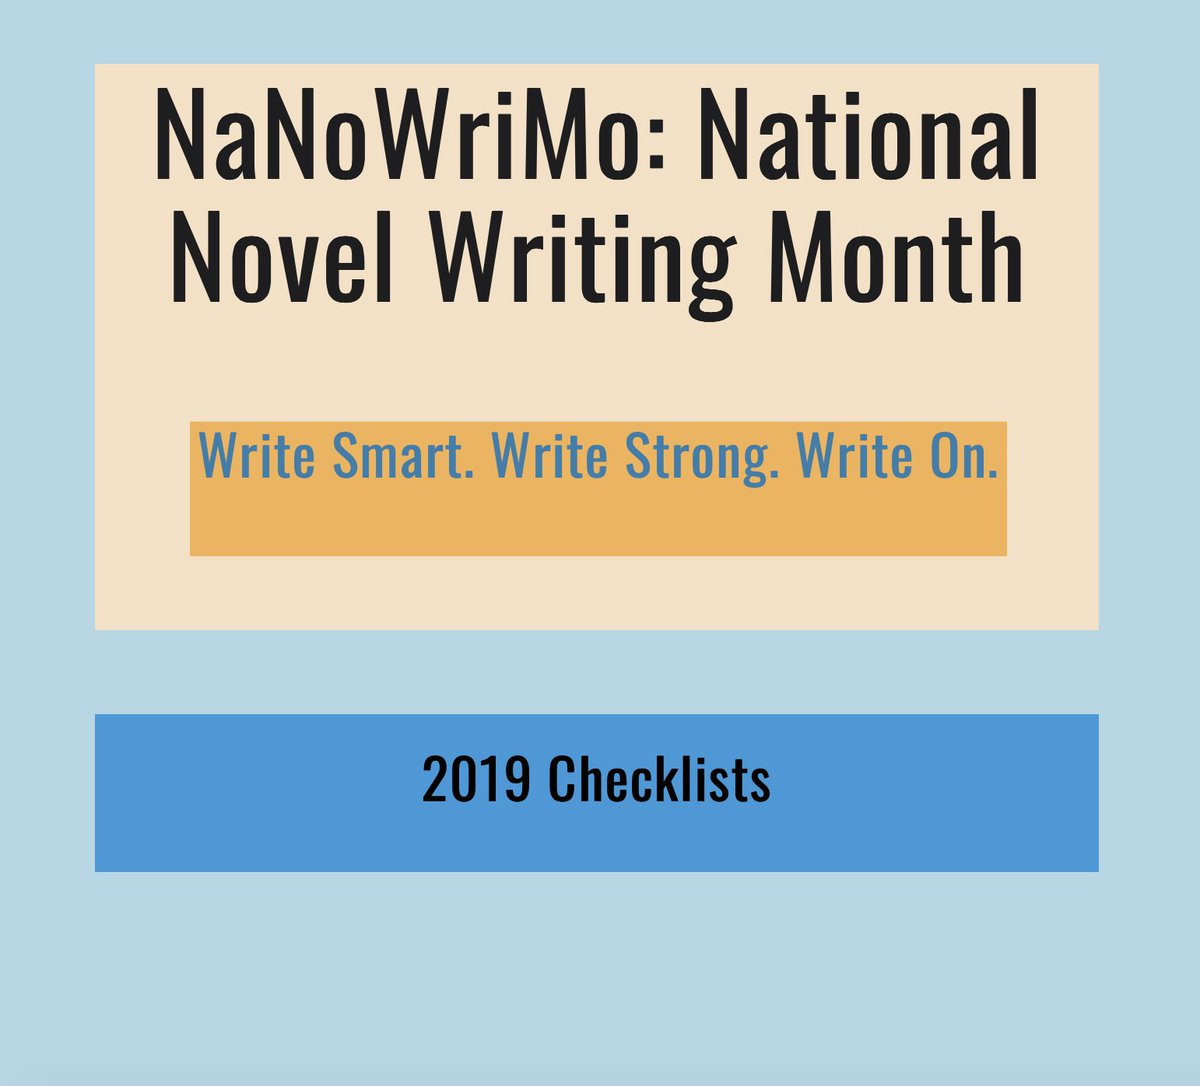 Free resource for NaNoWriMo participants from my website. Check out a new pin and give my account some love!  Thanks. #fiction #storytelling #WritingCommunity #WriterLift #writerslift #FF    https://www. pinterest.com/pin/7896781158 95835088/   … <br>http://pic.twitter.com/YuKvDkxVQS